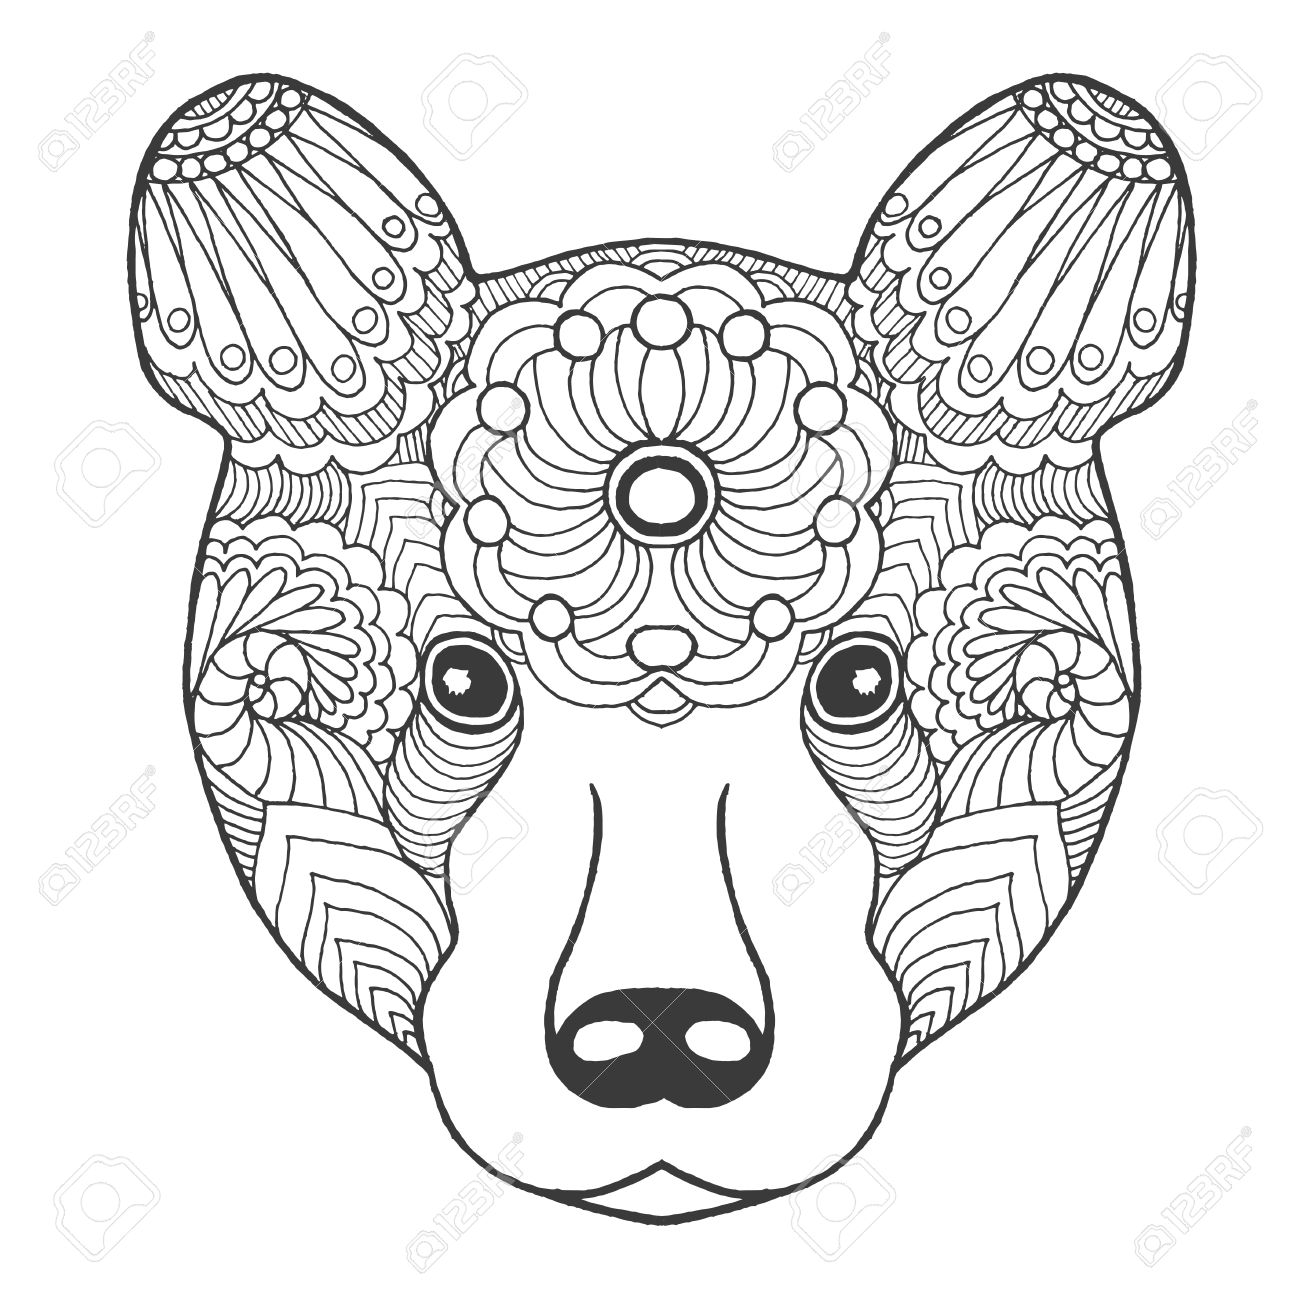 1300x1300 Cute Bear. Black White Hand Drawn Doodle Animal. Ethnic Patterned